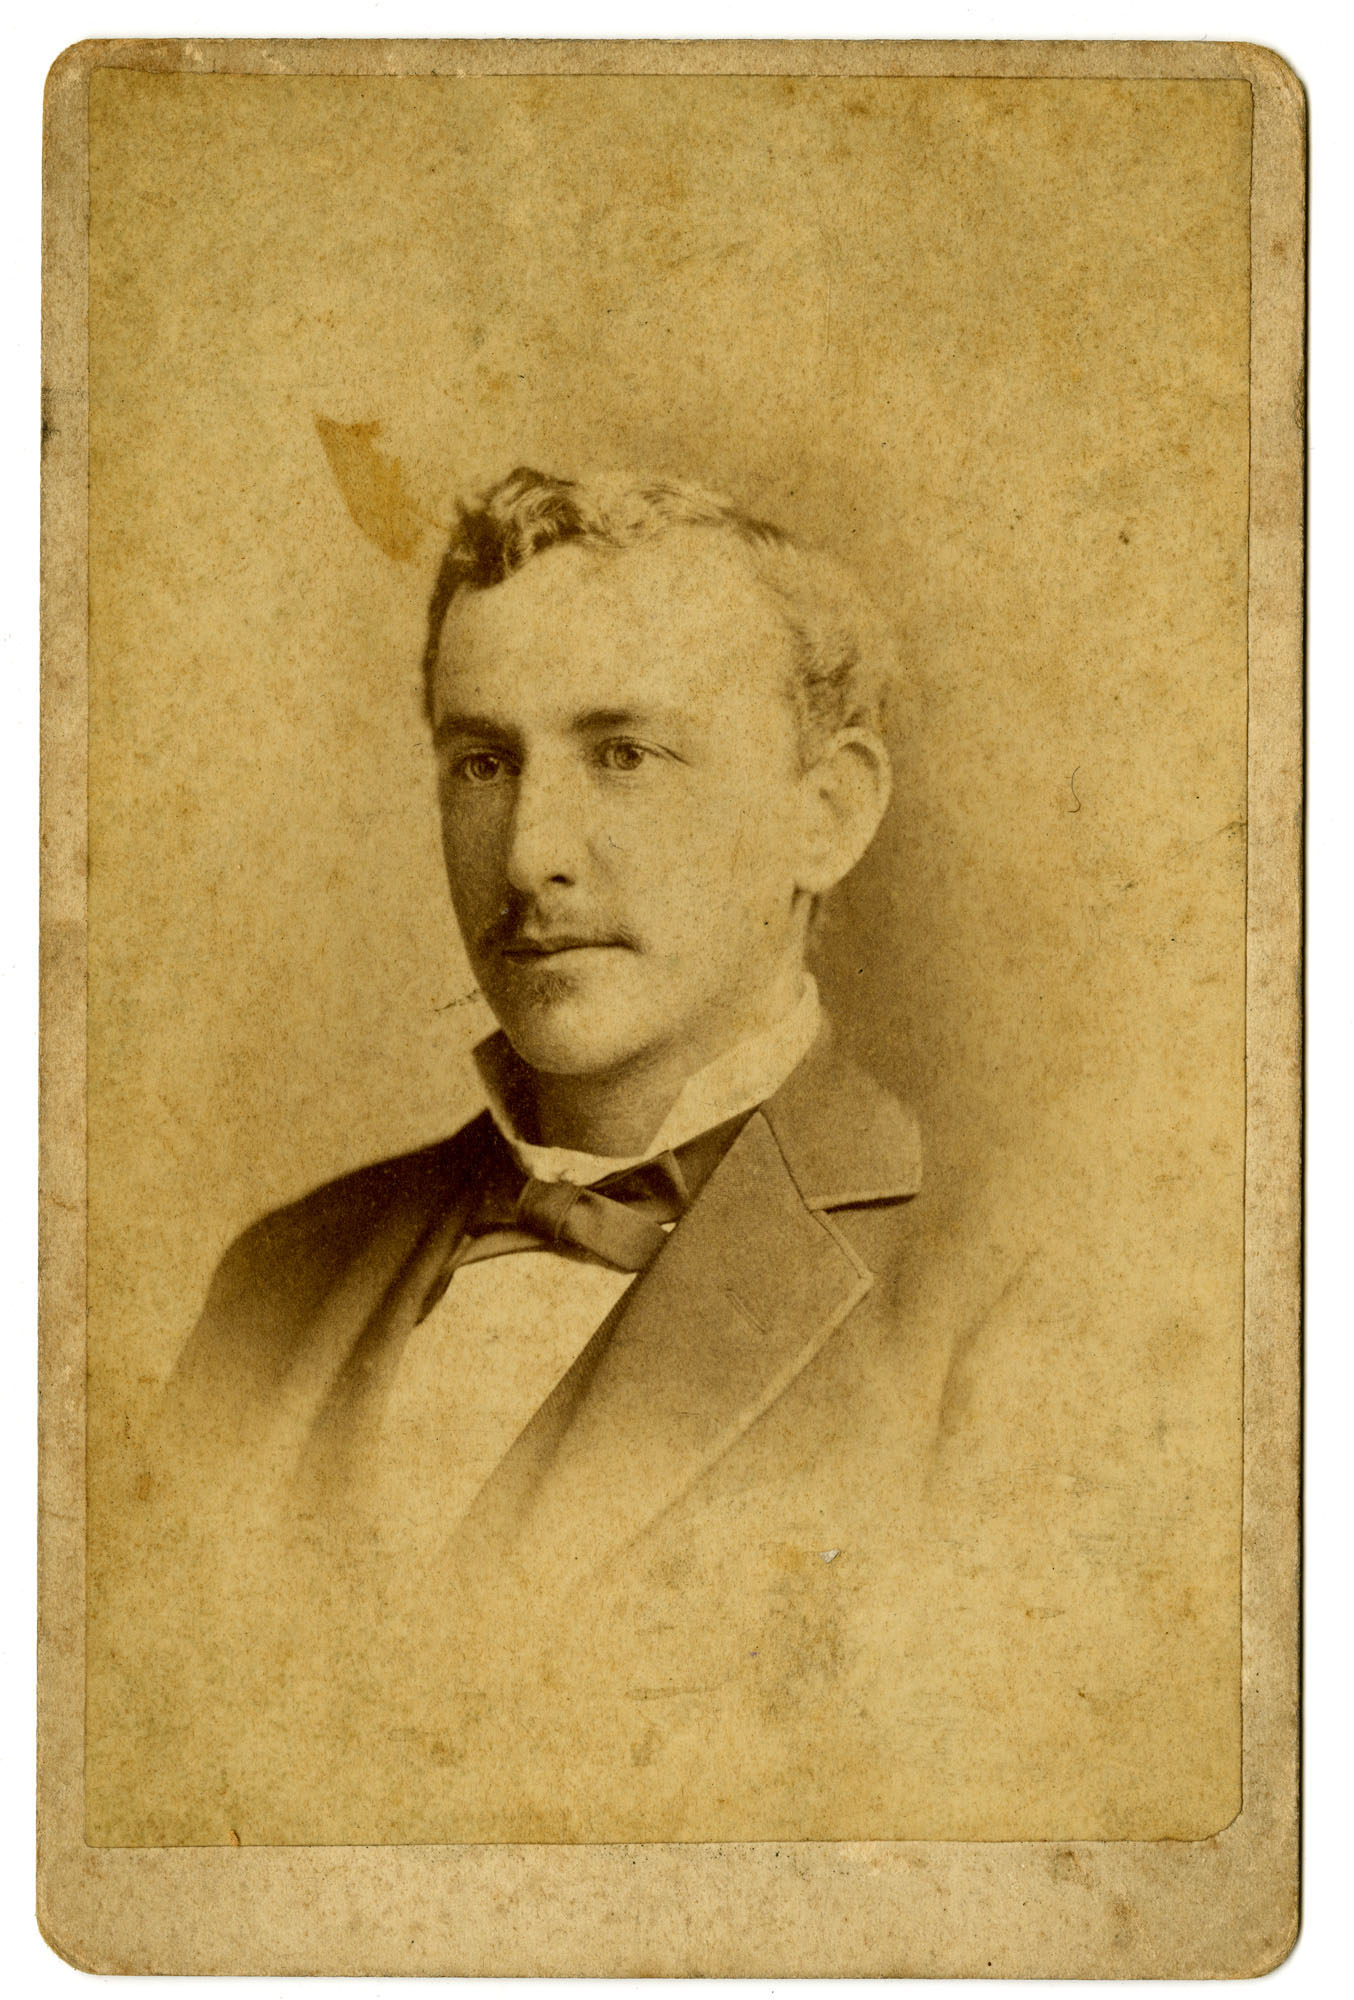 Gustave M. Pollitzer, about 25 years old